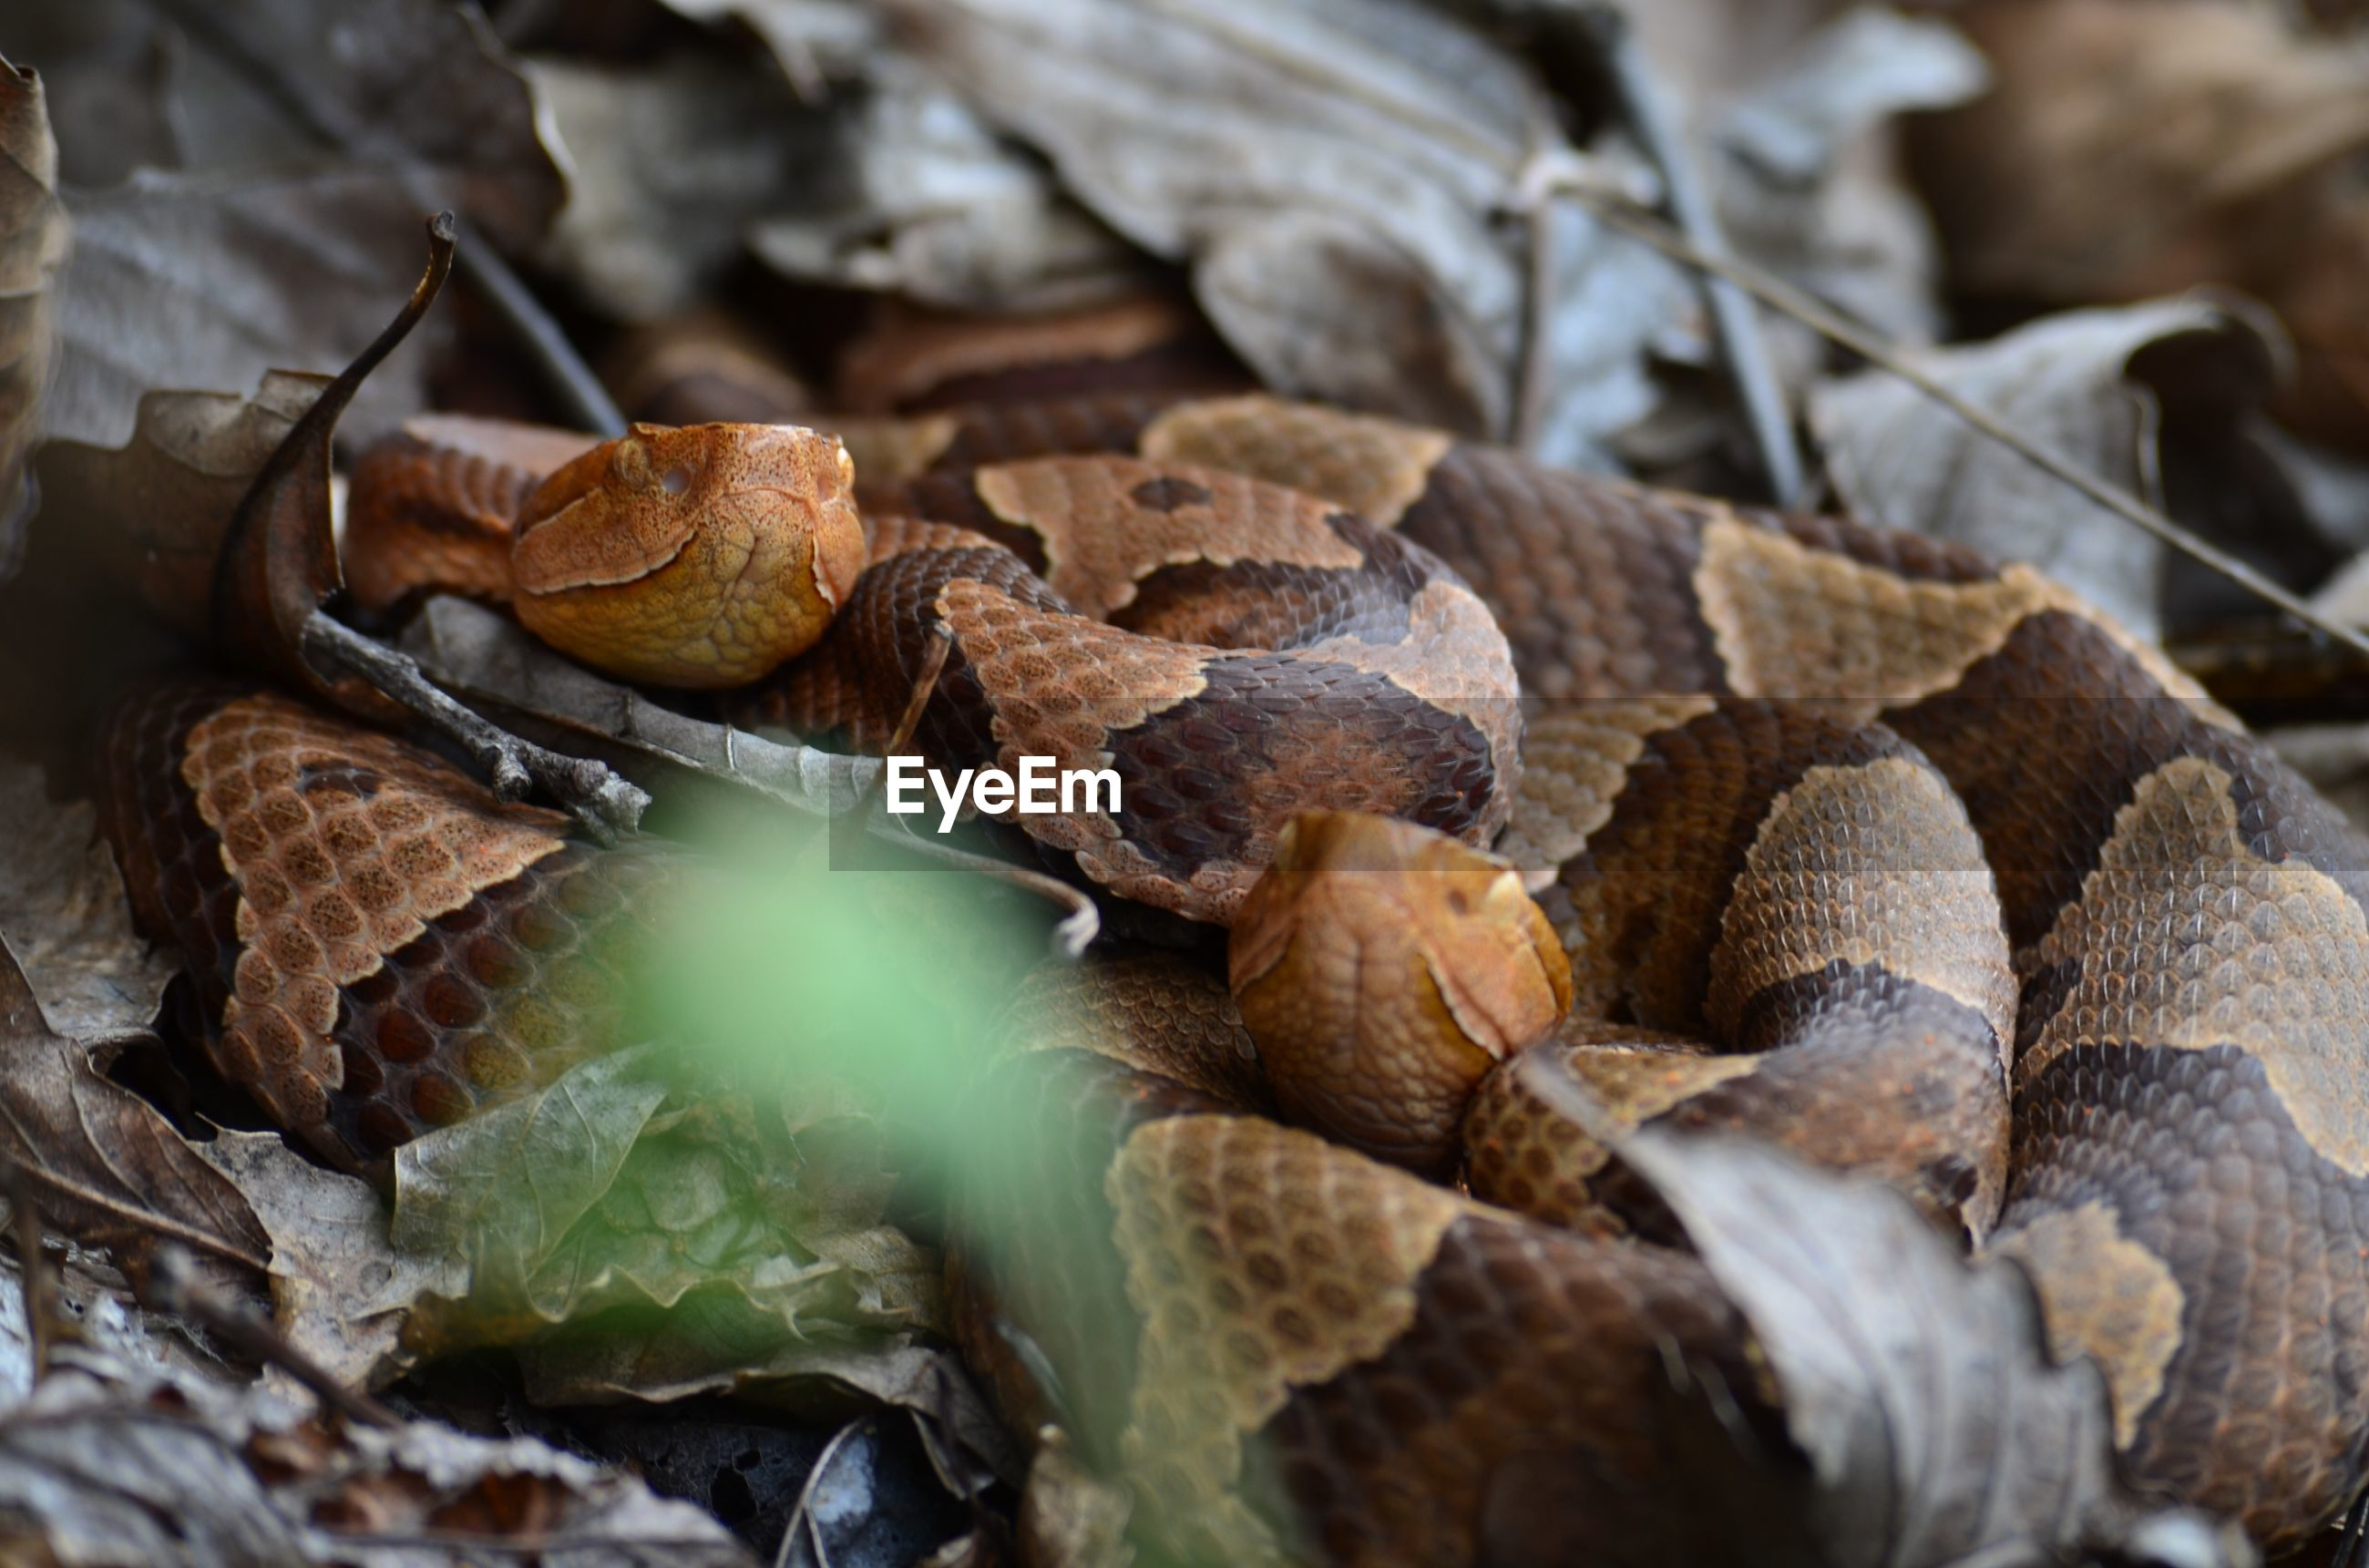 Two northern copperheads upclose